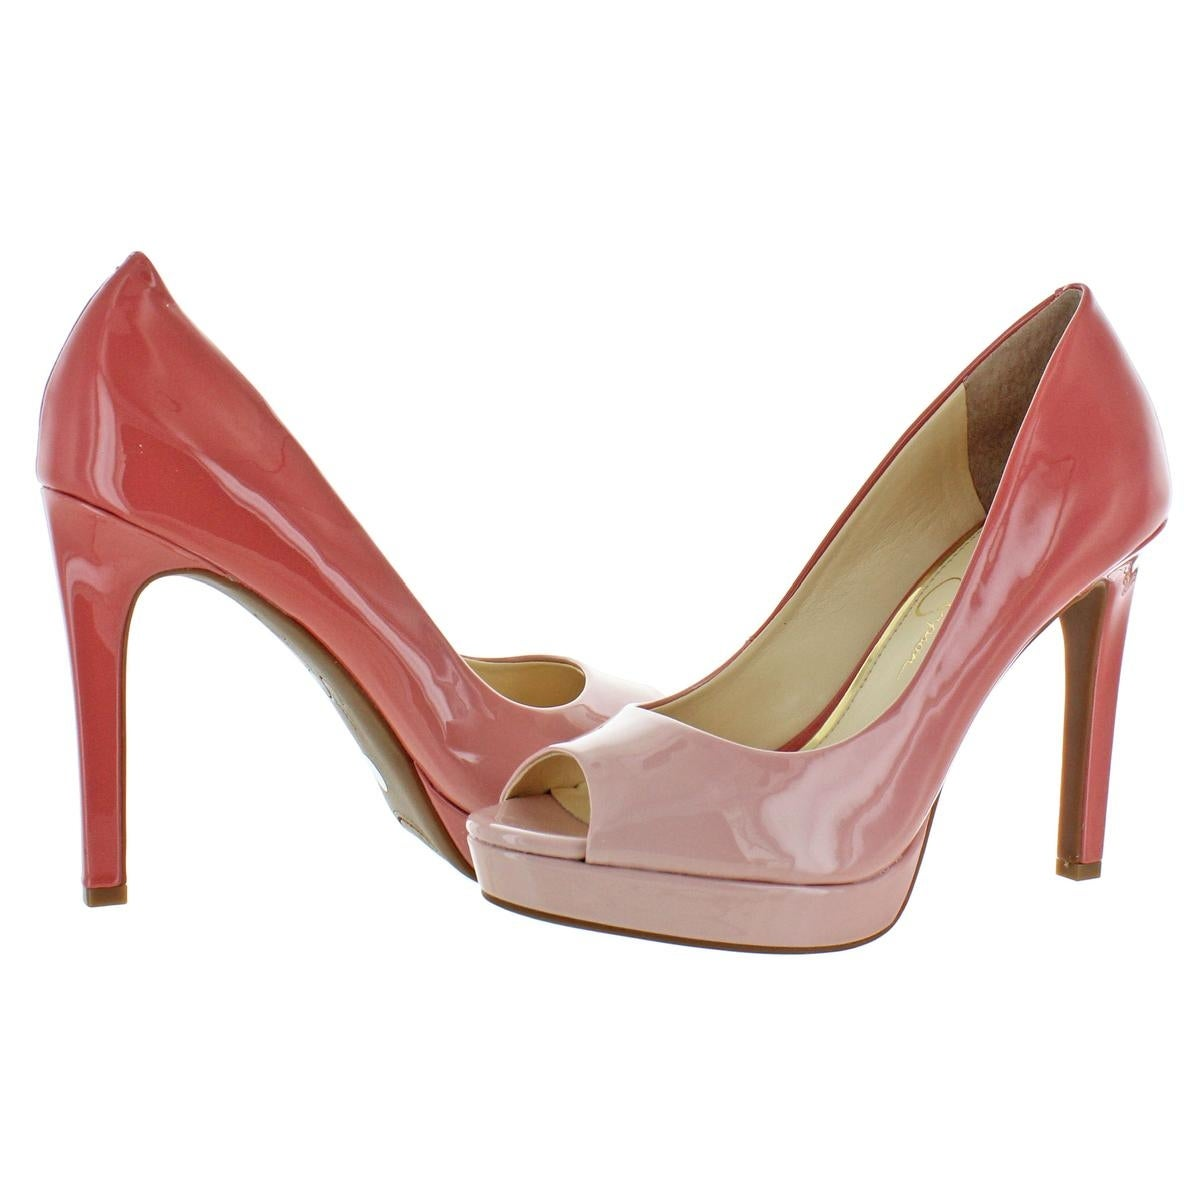 49ff1c4272 Shop Jessica Simpson Womens Dalyn Peep-Toe Heels Dressy - Free Shipping  Today - Overstock - 28133431